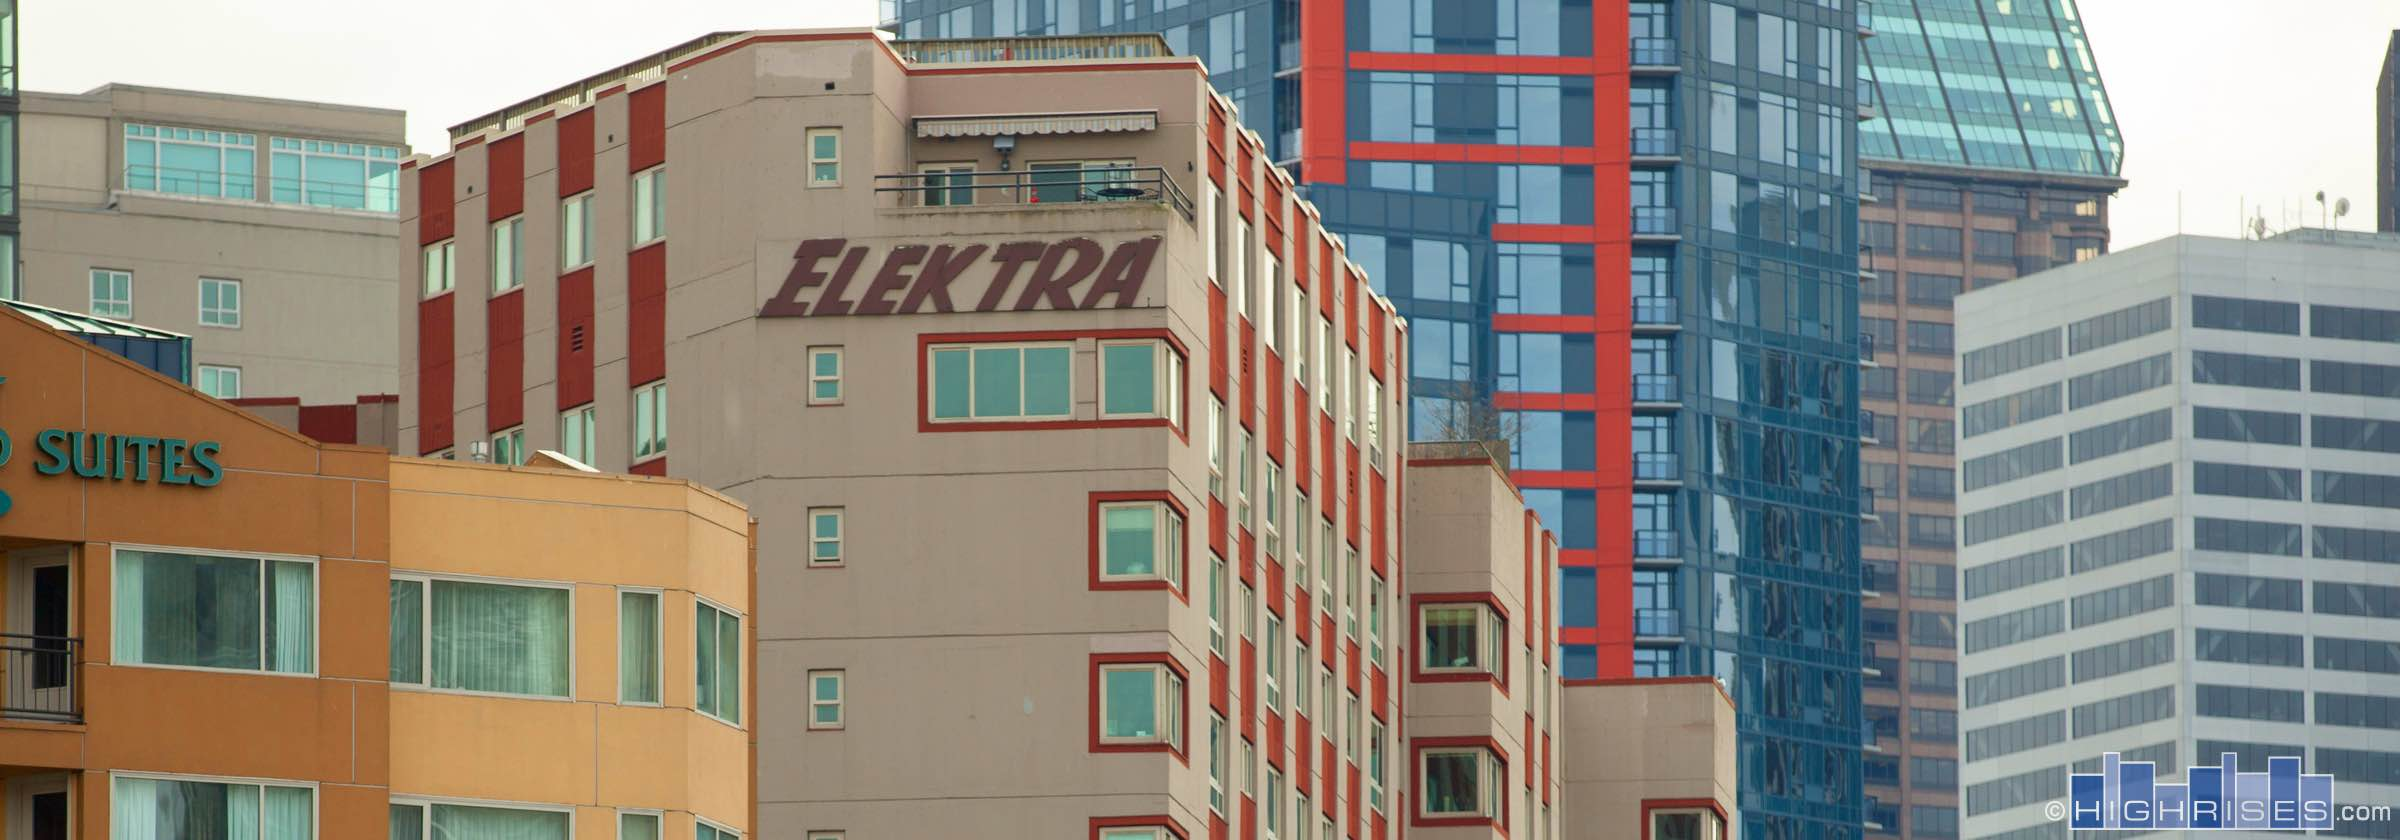 Elektra Condos Of Seattle Wa 1400 Hubbell Pl